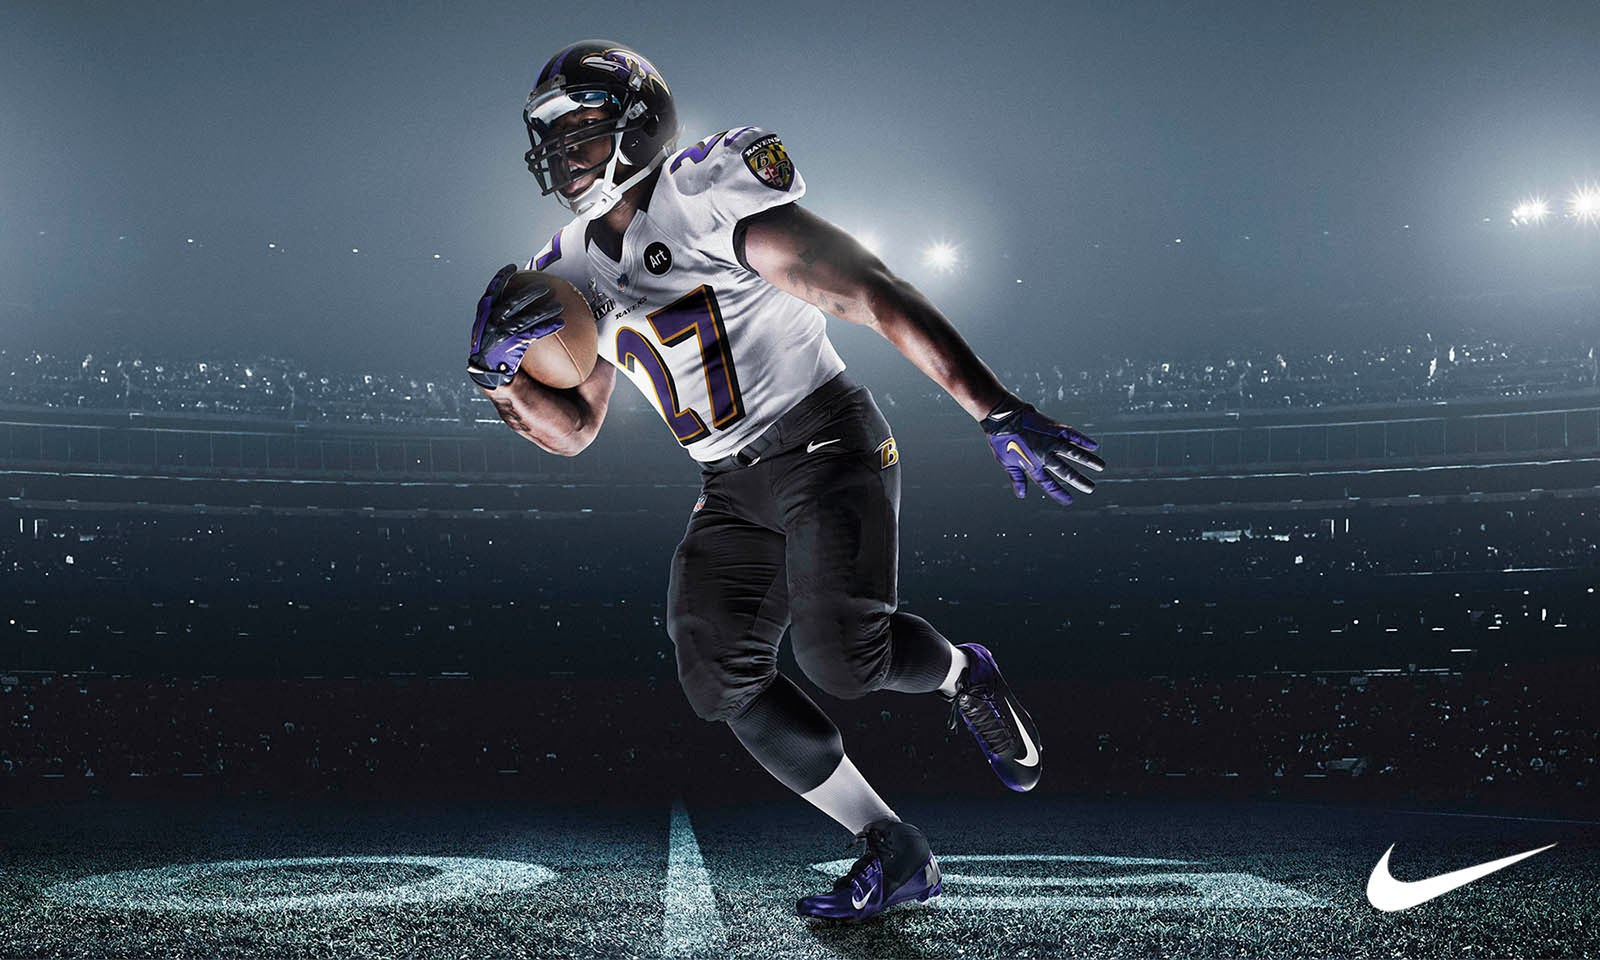 nfl player ray rice hd wallpapers collection sports club